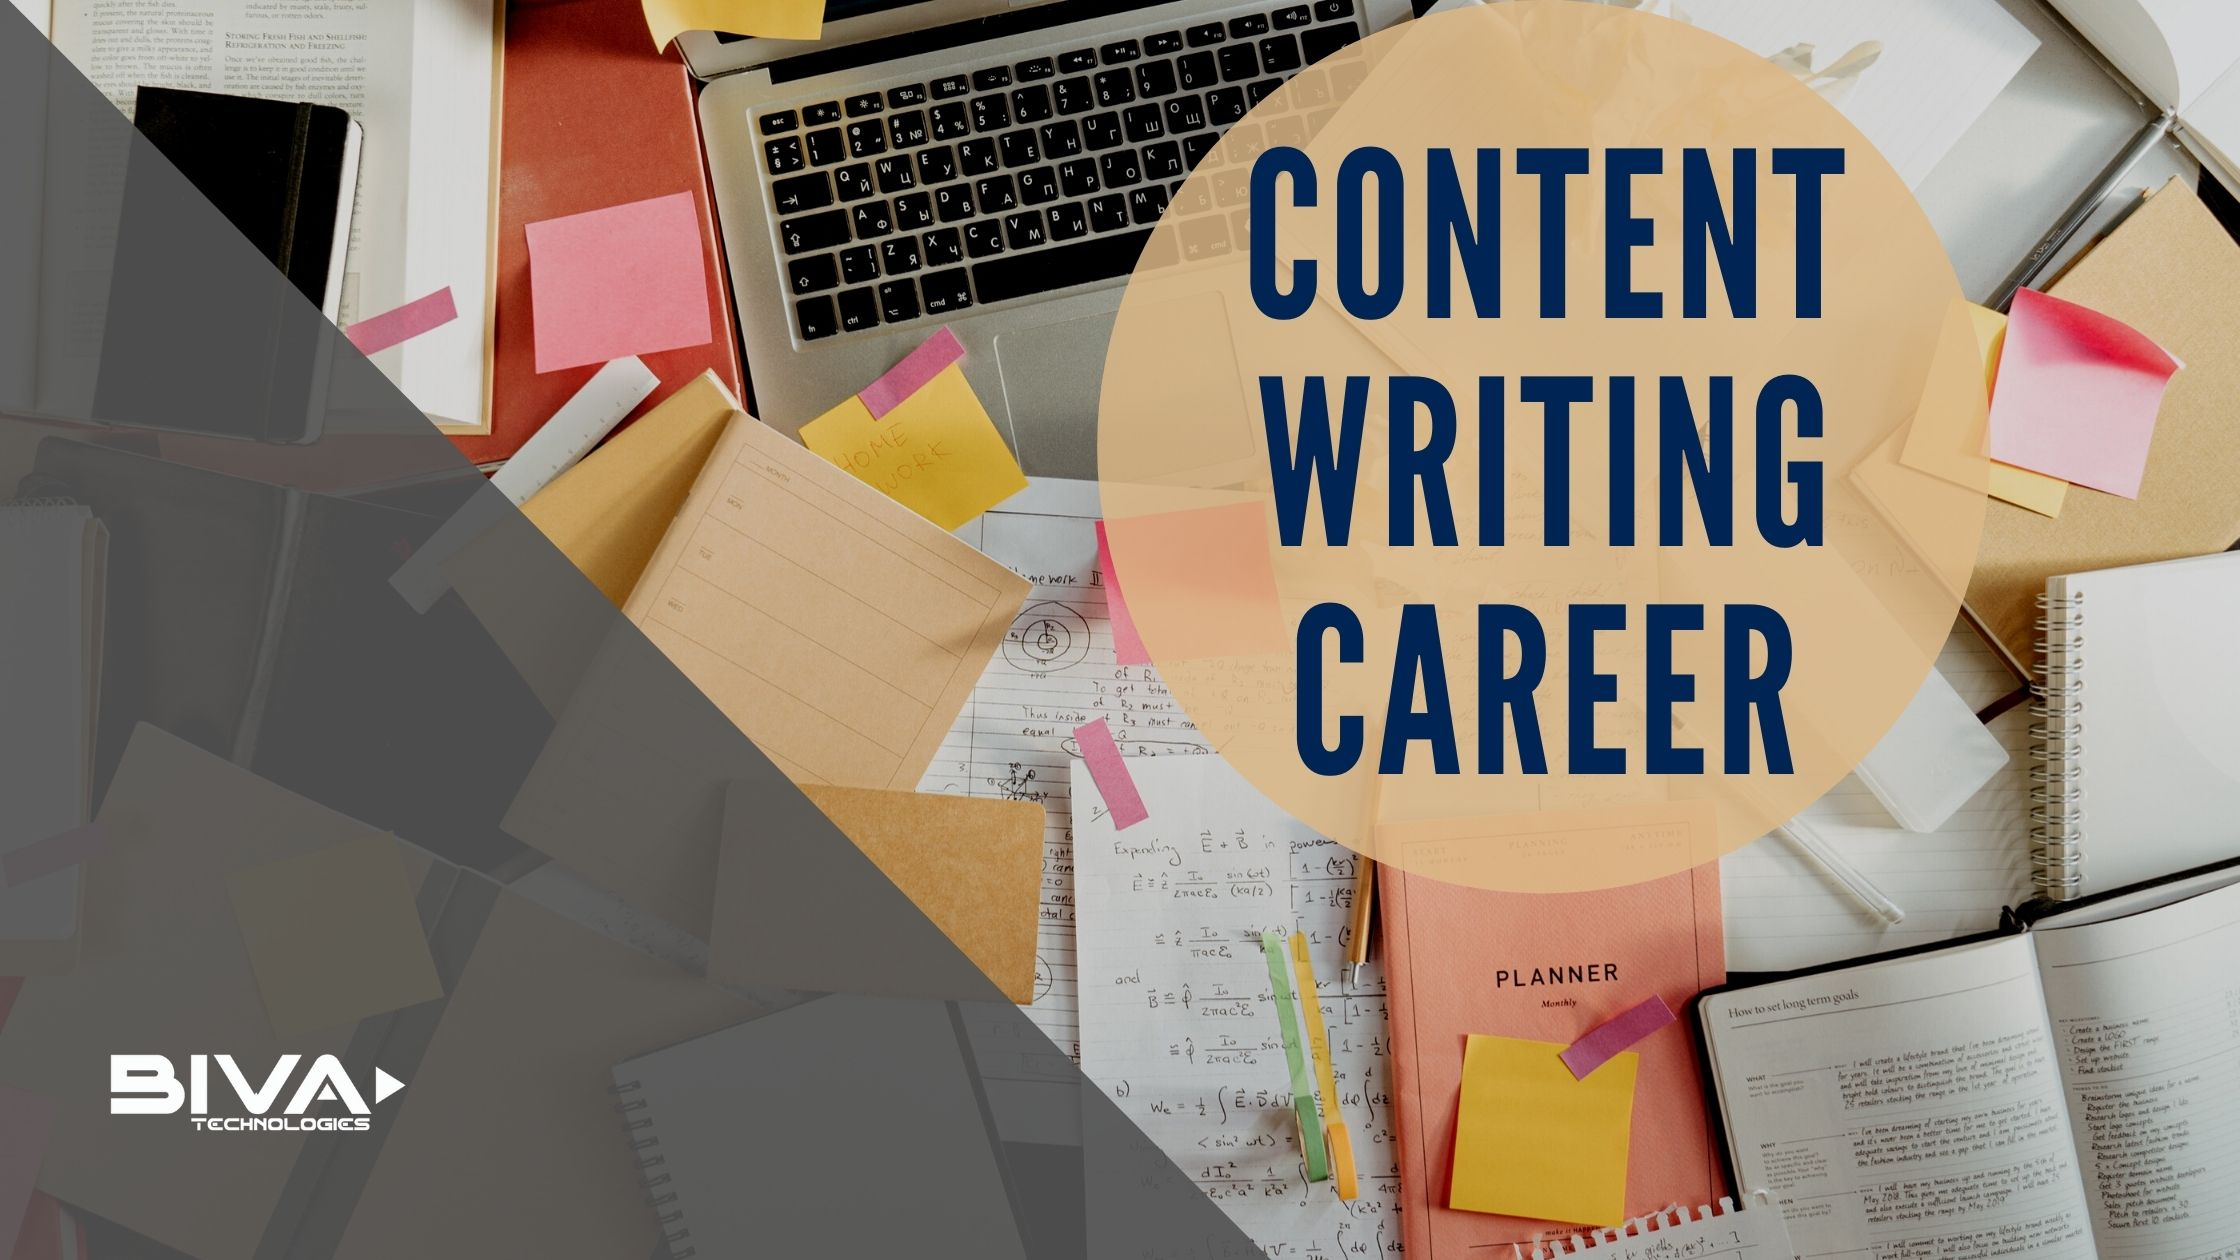 Content writing career